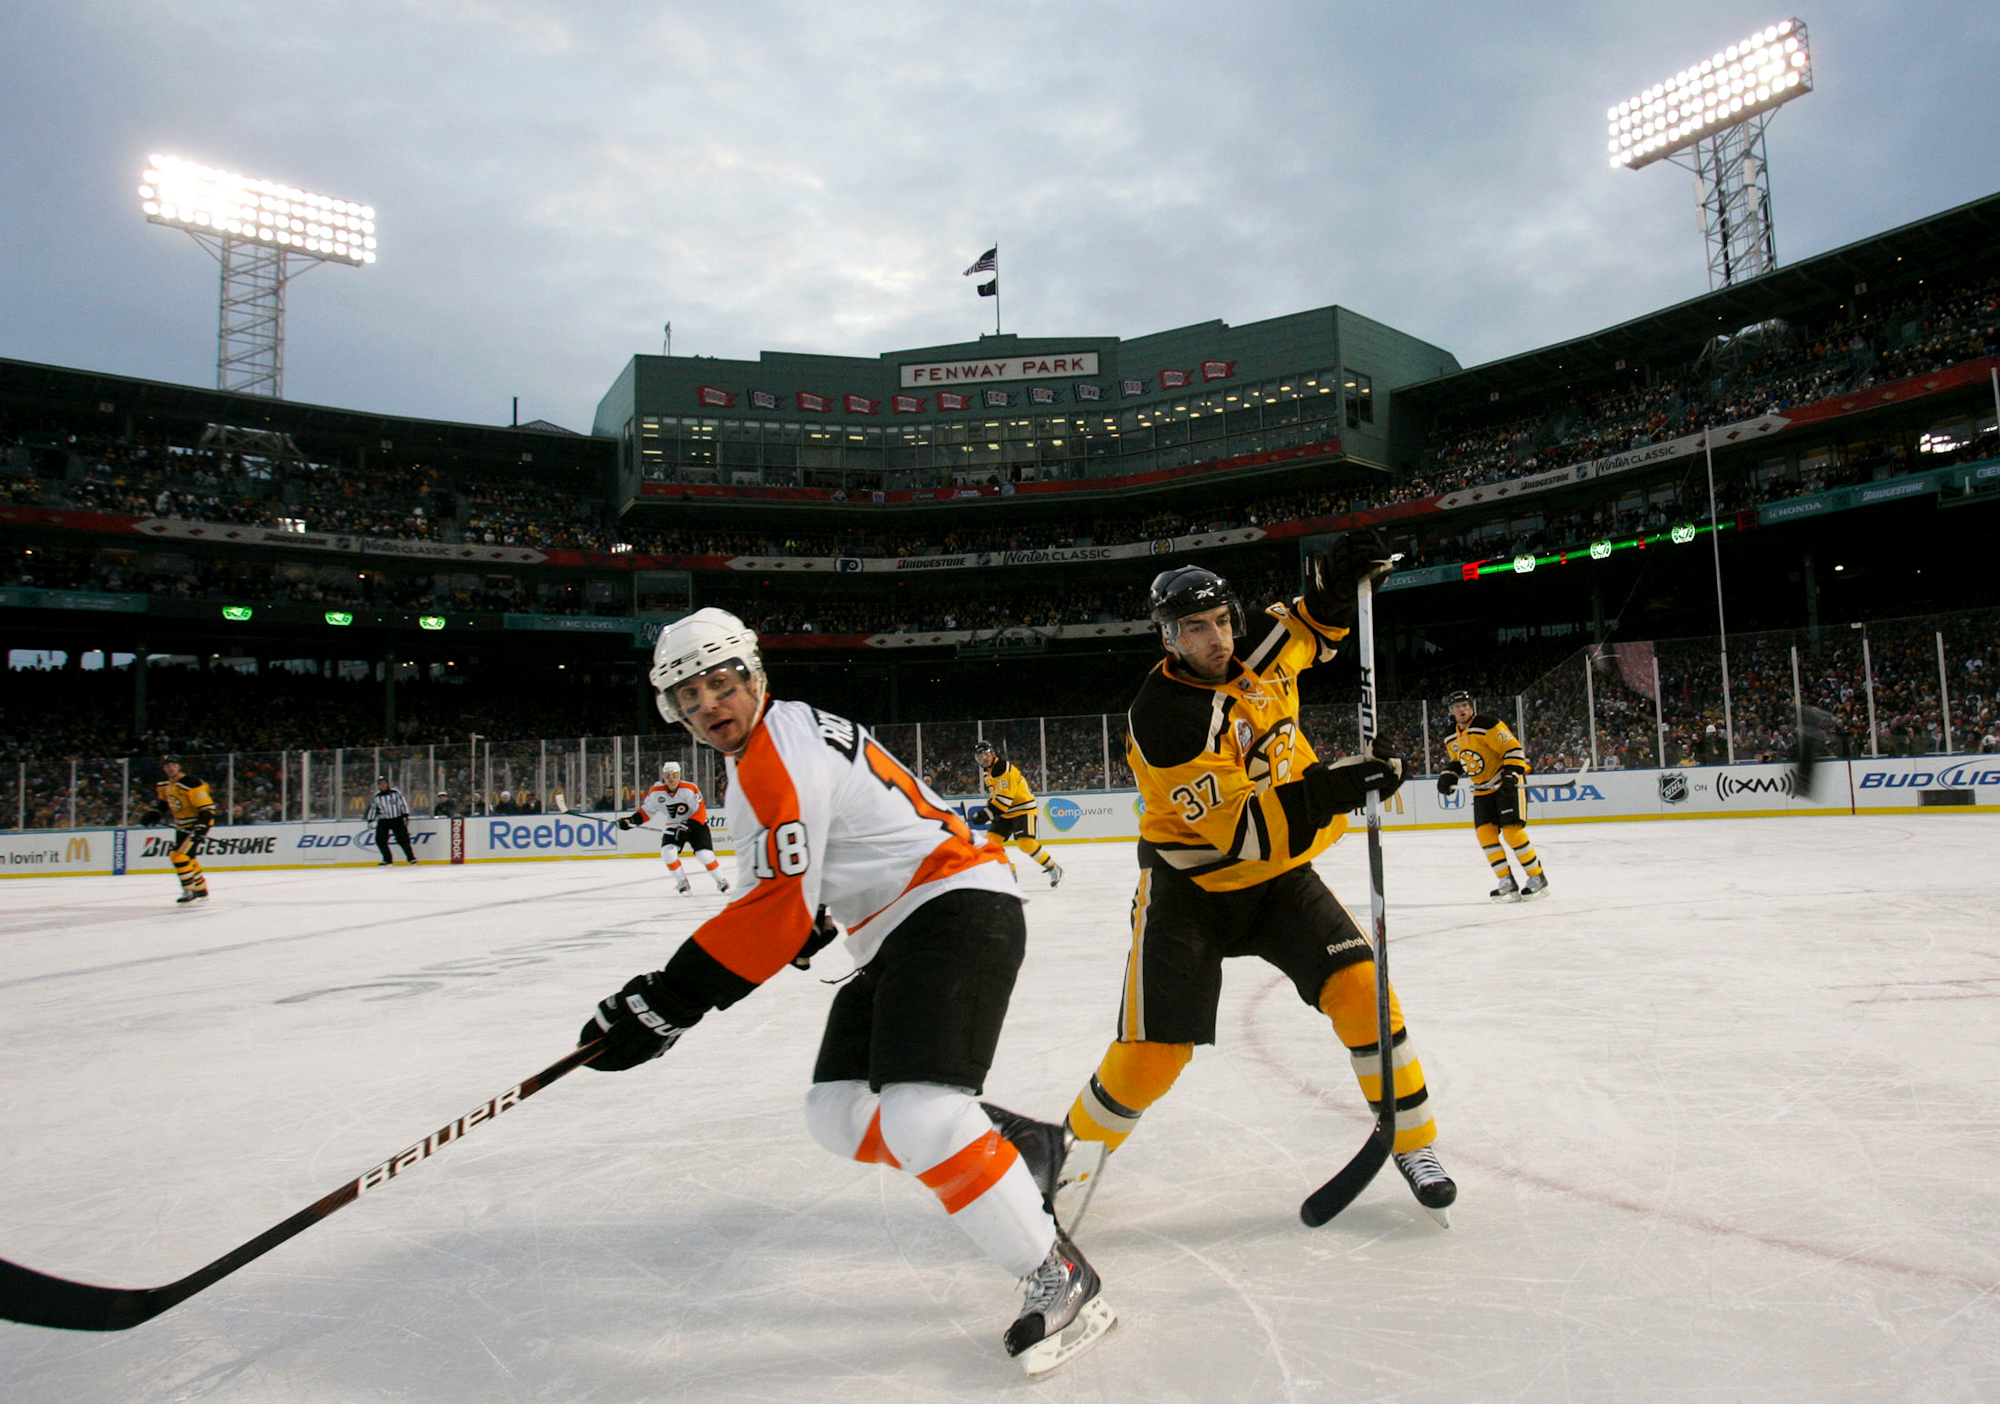 Boston Bruins center Patrice Bergeron (37) and Philadelphia Flyers center Mike Richards (18) chase down a loose puck in the third period of the 2010 Bridgestone NHL Winter Classic at Fenway Park in Boston, Massachusetts on New Years Day, January 1, 2010. The Bruins defeated the Flyers 2-1.